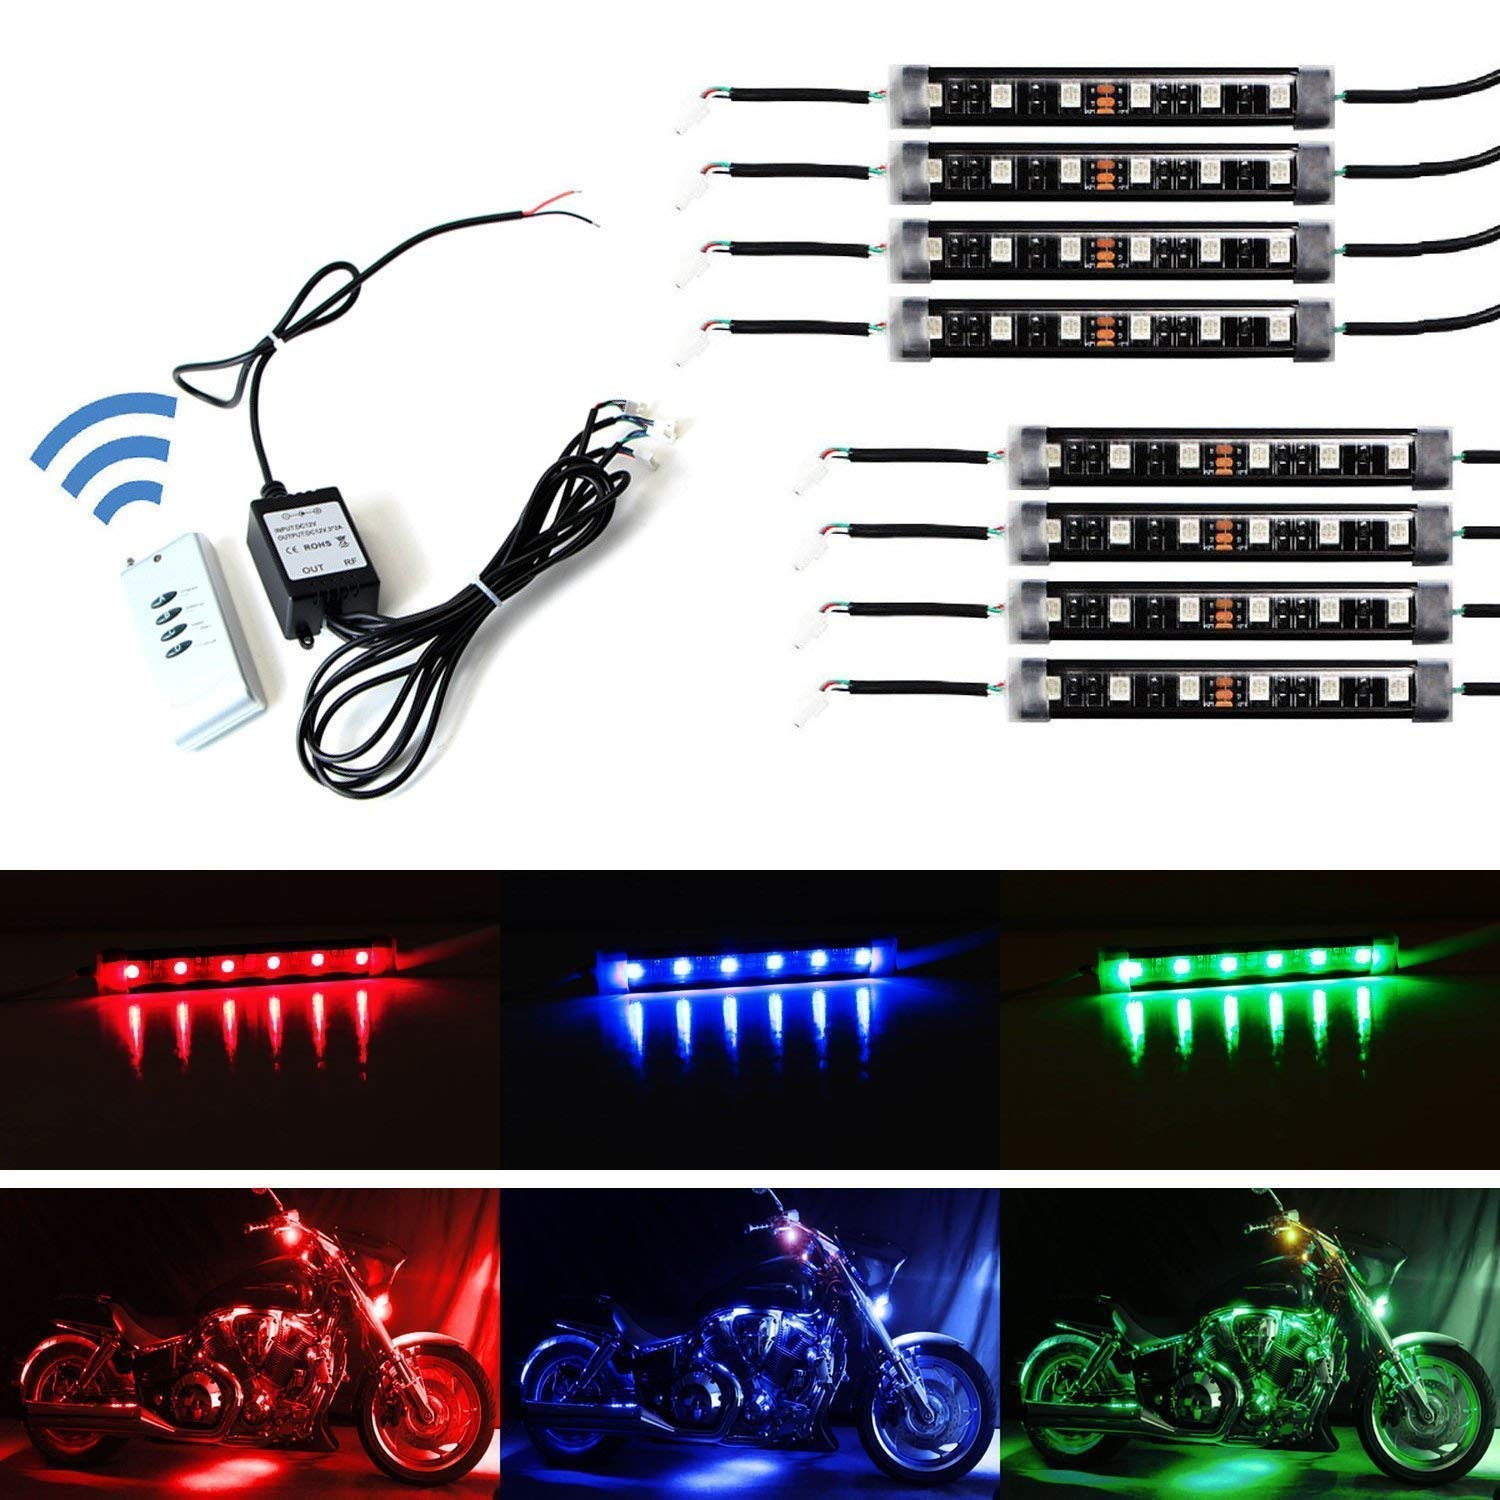 iJDMTOY 8pcs RGB Multi-Color LED Motorcycle Ground Effect Light Kit w/Wireless Remote Control iJDMTOY Auto Accessories LED Strip Lighting Kit For Show Off-Road